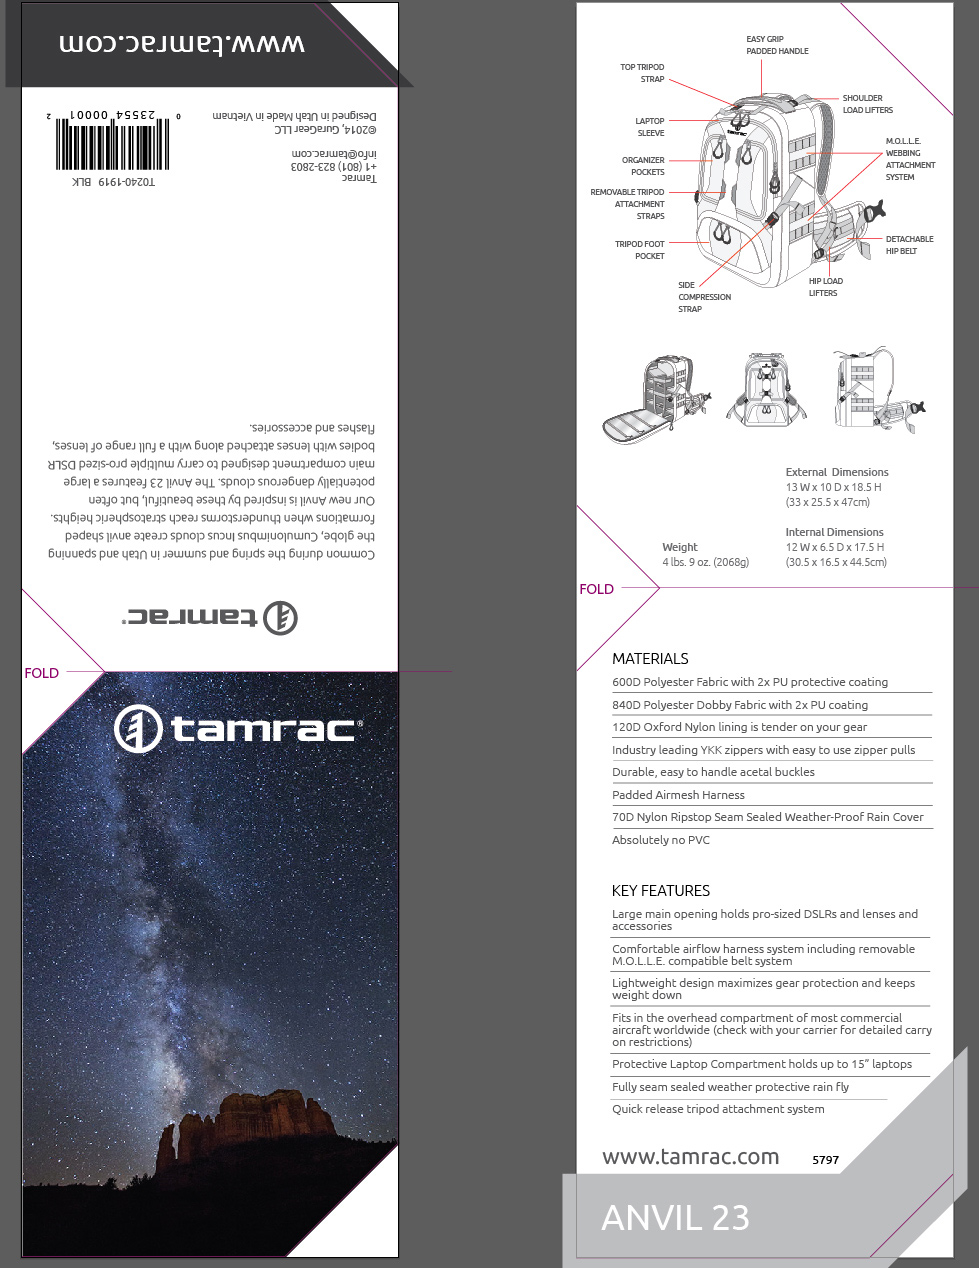 My image used on the new Tamrac Anvil 23 backpack